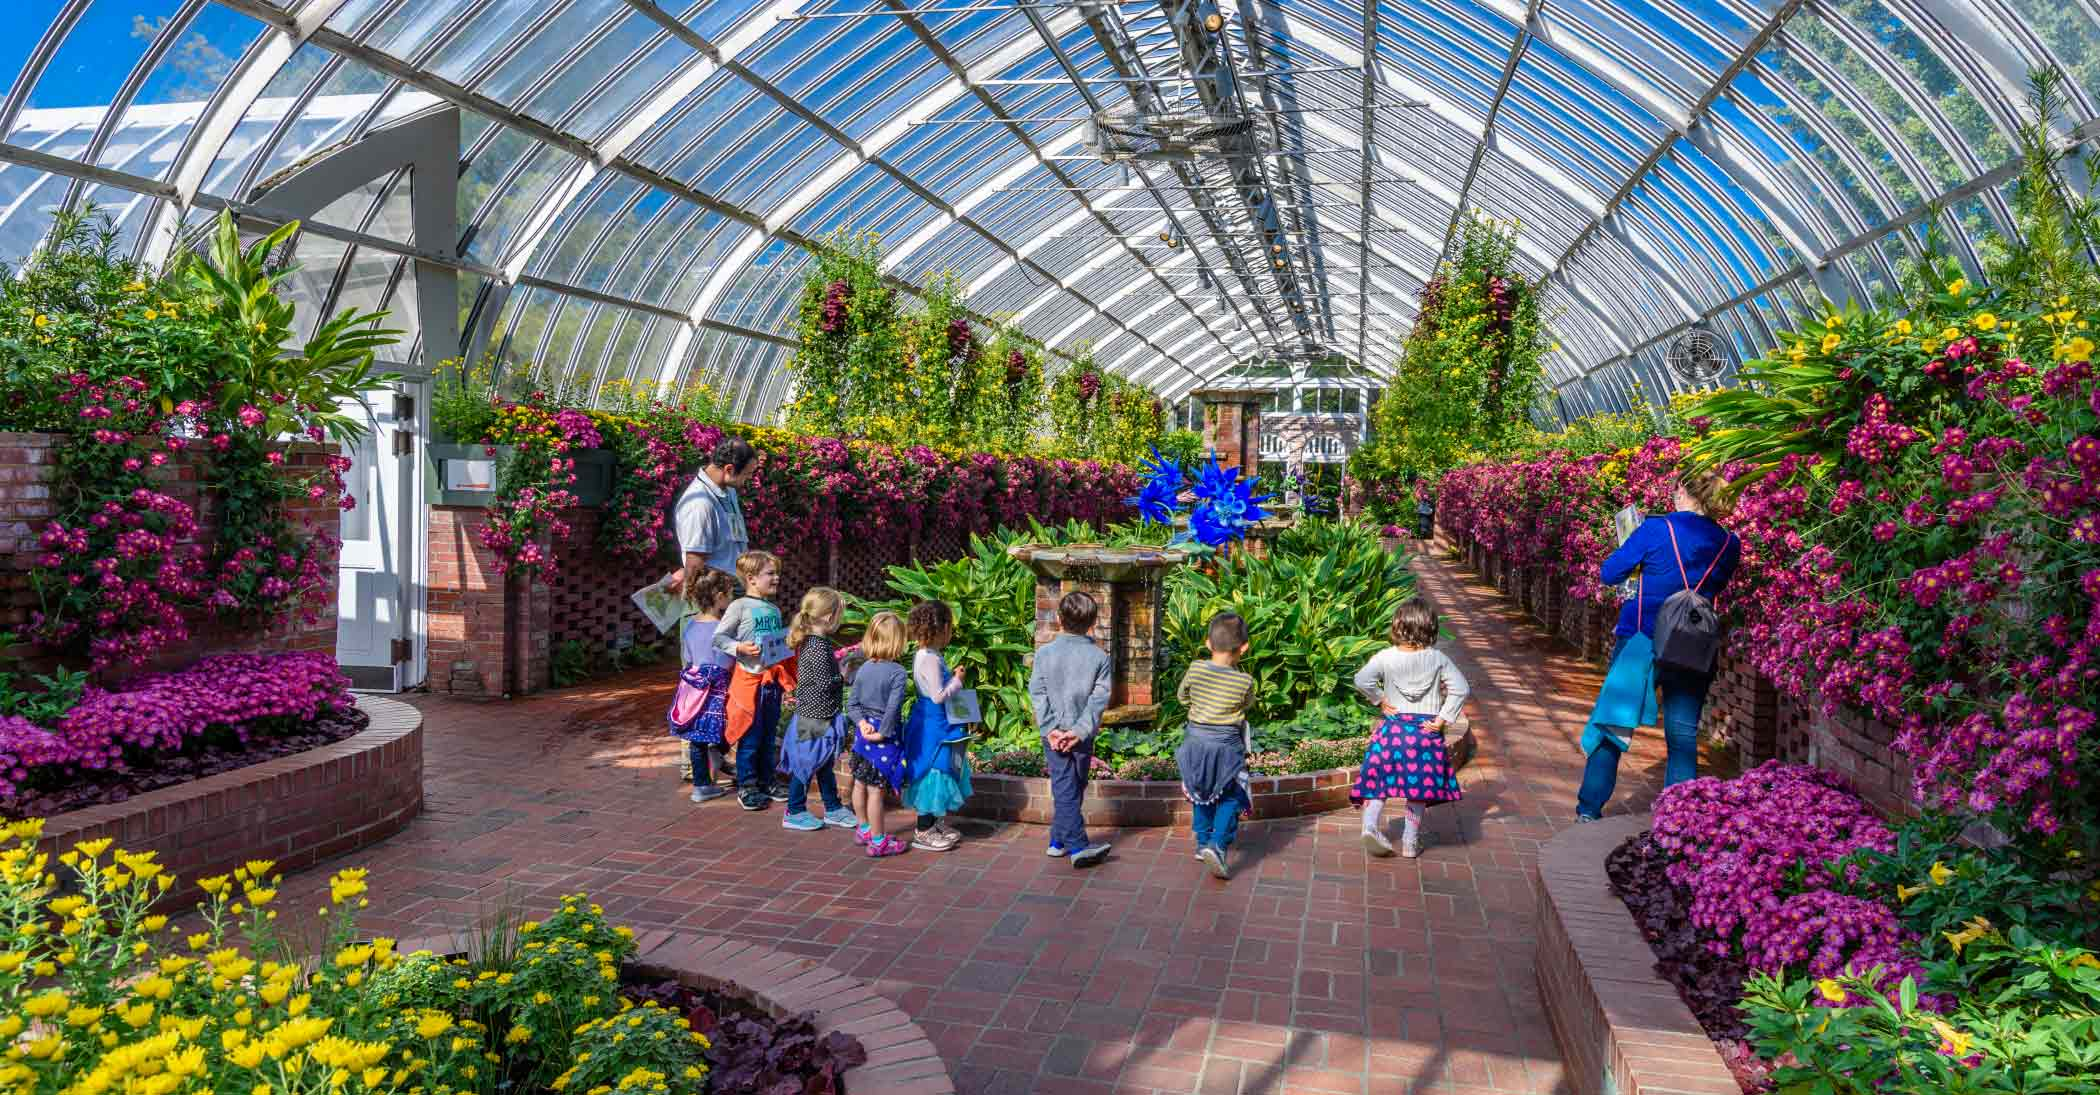 Genial Phipps Conservatory And Botanical Gardens Has Contributed To The Beauty And  Vitality Of Pittsburgh For More Than A Century. In Recent Years, Our  Ability To ...